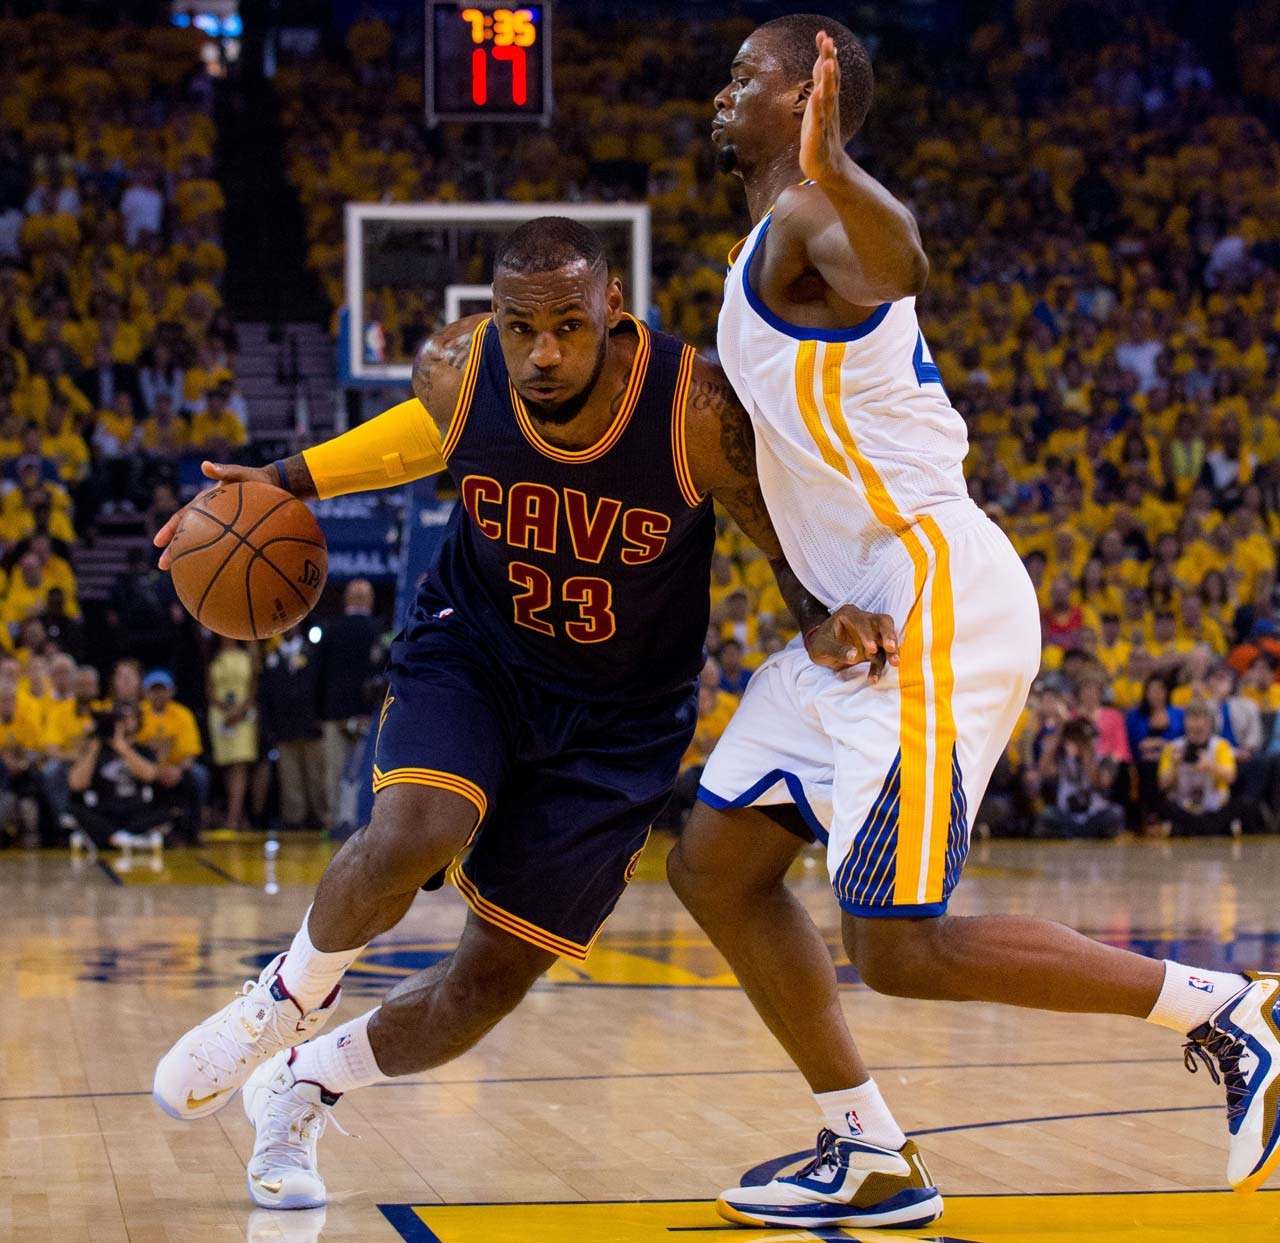 Knight Basketball Player Wallpaper: Kyrie Irving Out For NBA Finals; Cavaliers Forced To